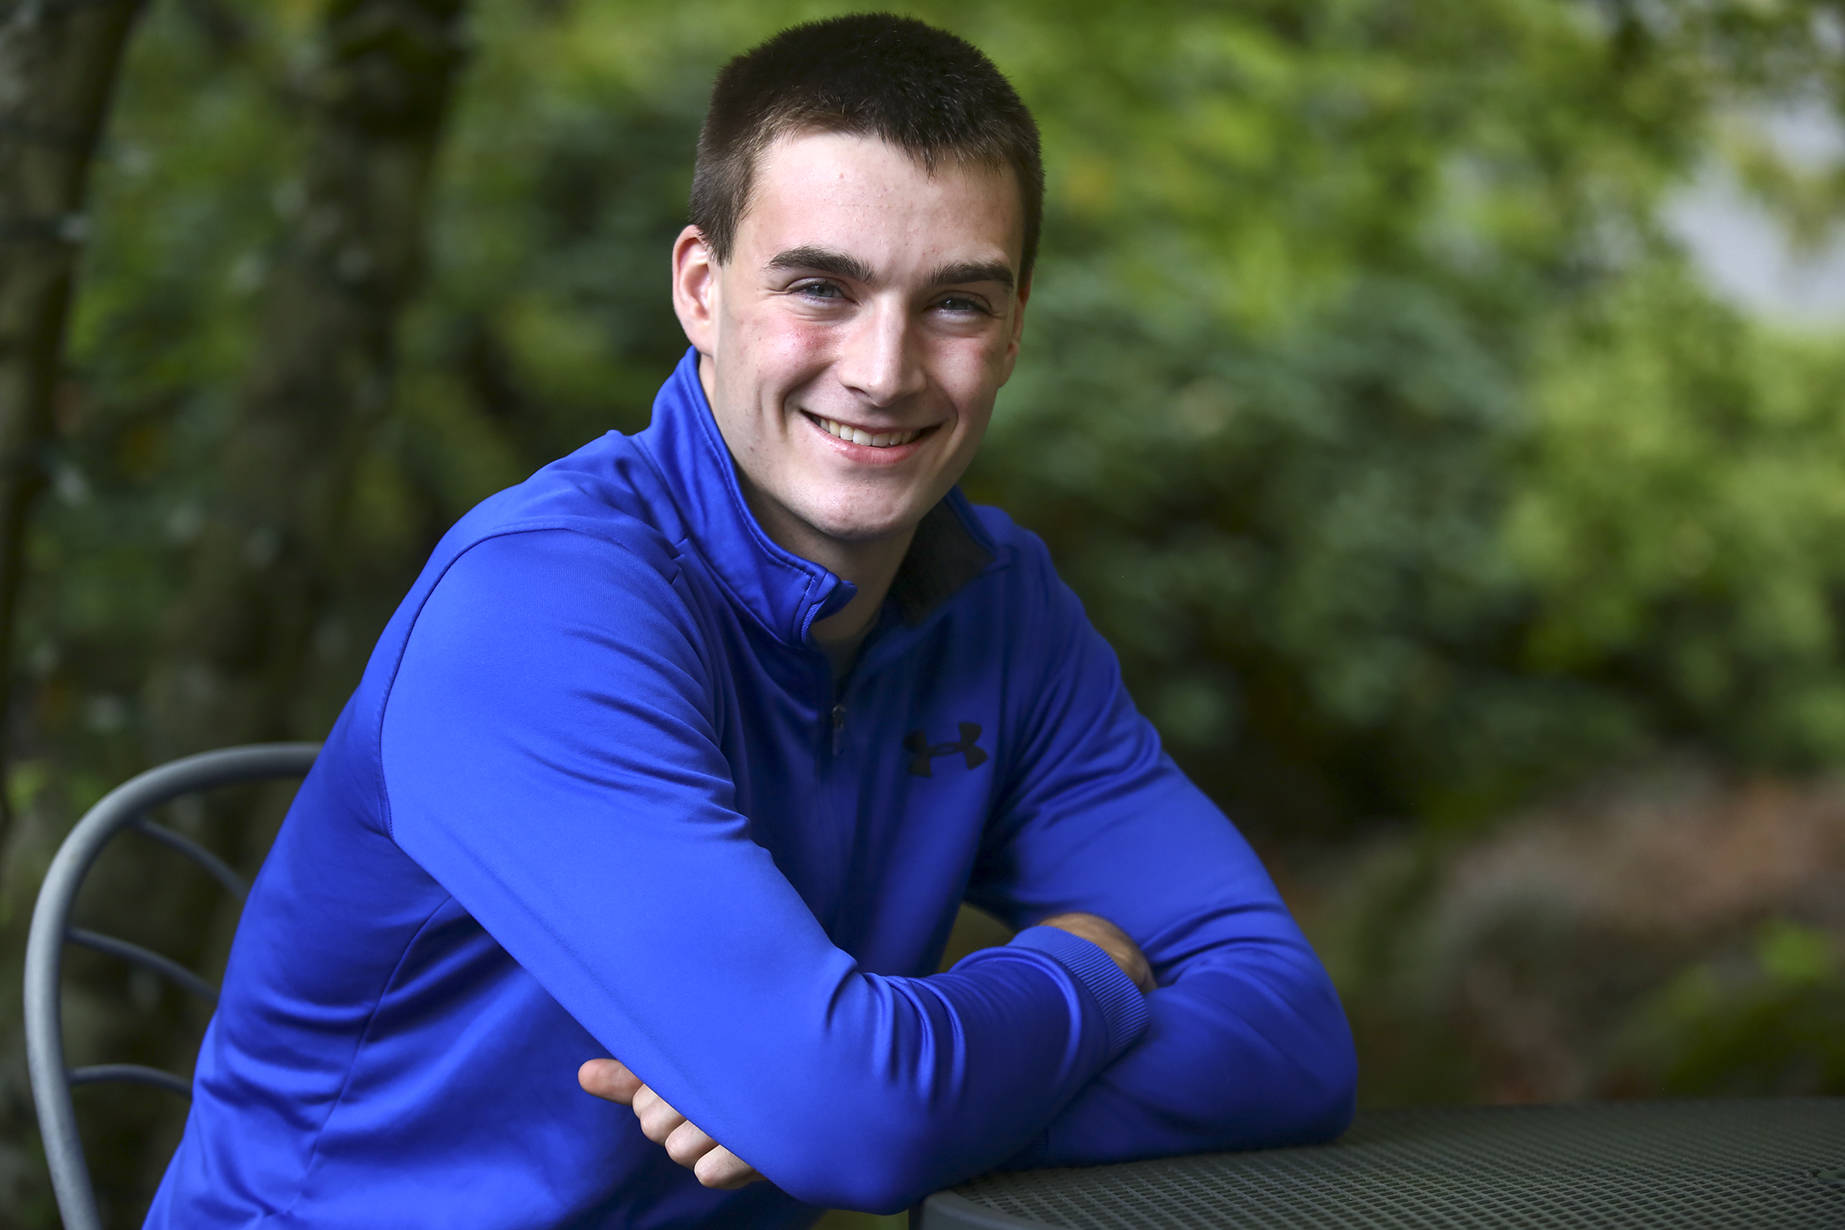 Sky Valley senior aiming for an Ivy League pre-med degree